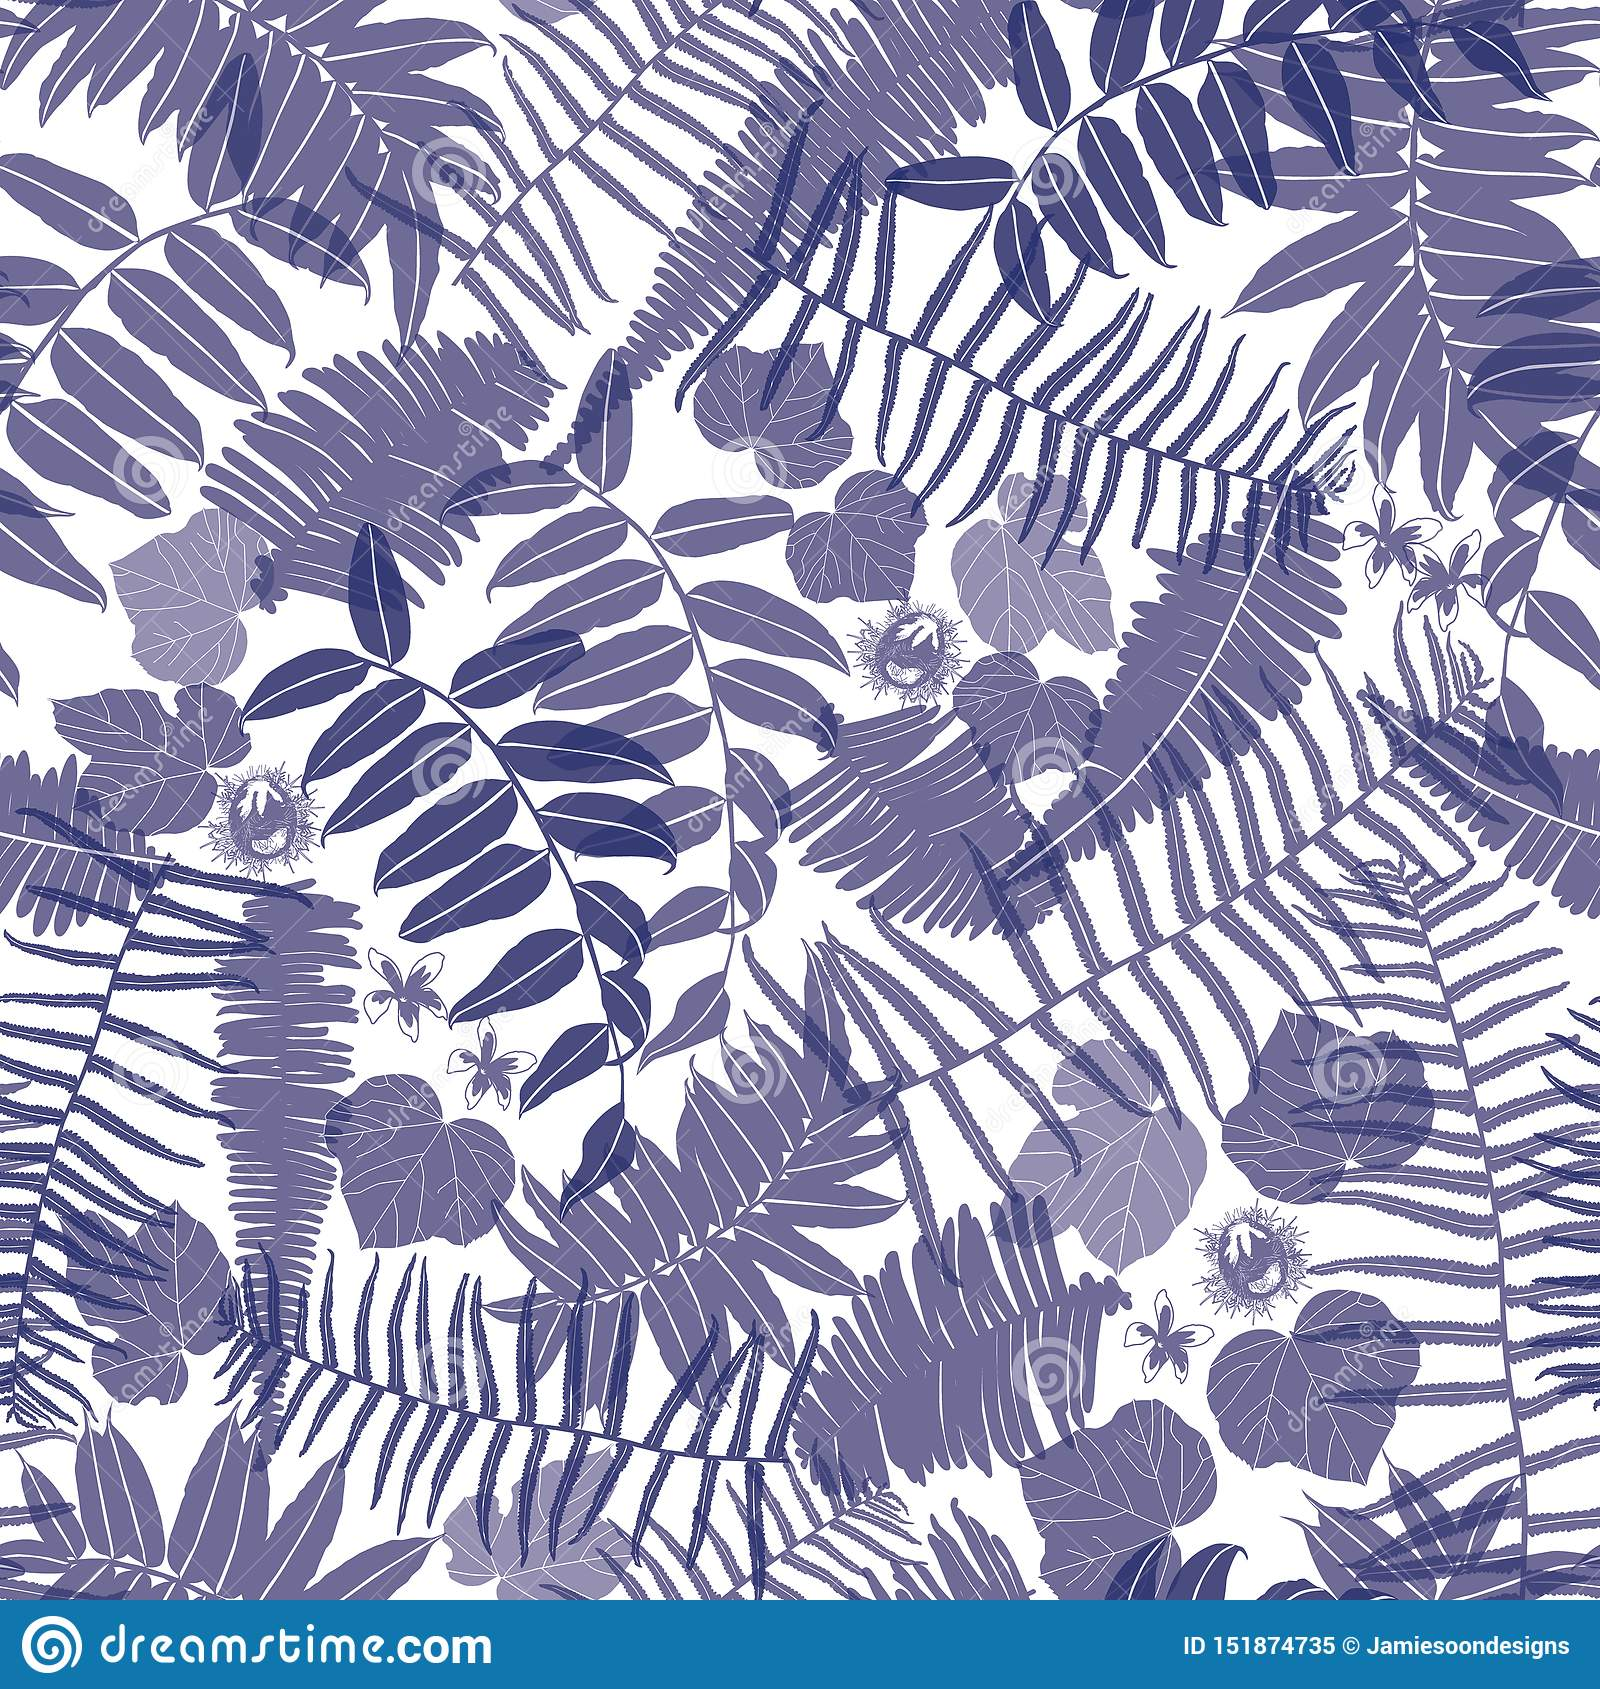 Vector blue and white seamless pattern with transparent ferns, leaves and wild flower. Suitable for textile, gift wrap and